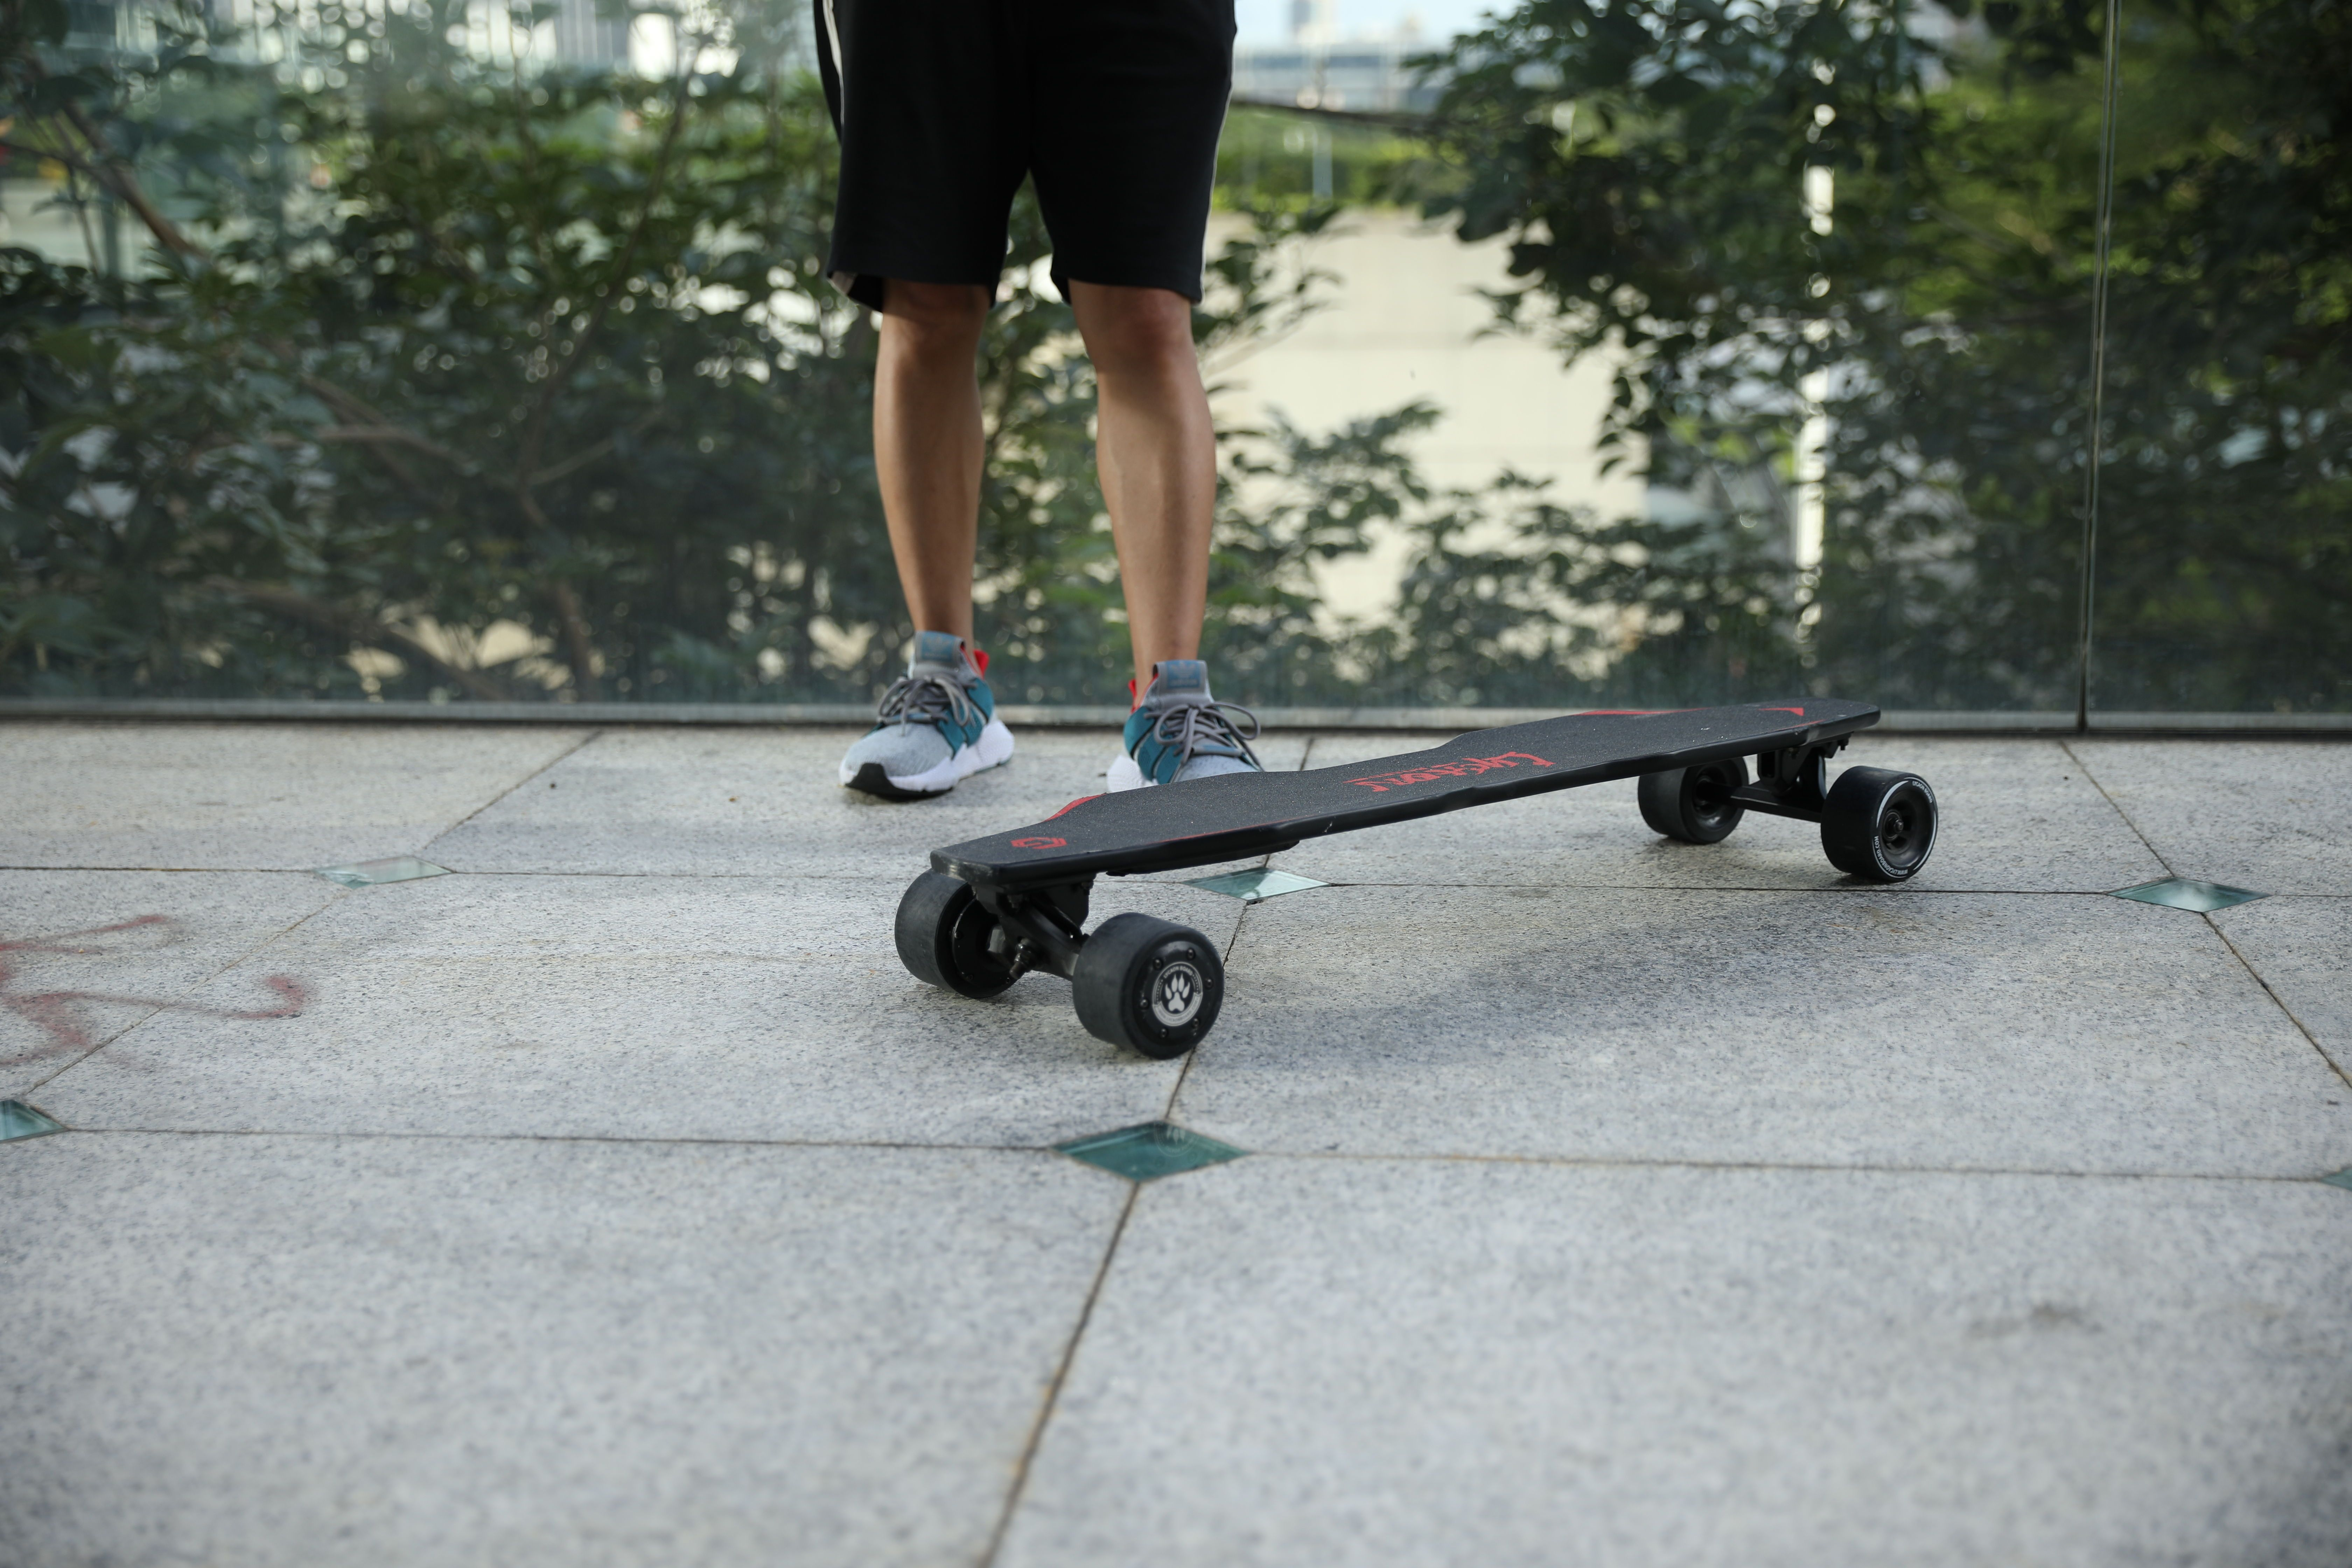 Skateboard Is An Electric Tool The Faster Electric Skateboard Is A Skateboard It Has A Top Speed Of 25 It Is Very Safe For People And They Electric Skateboard